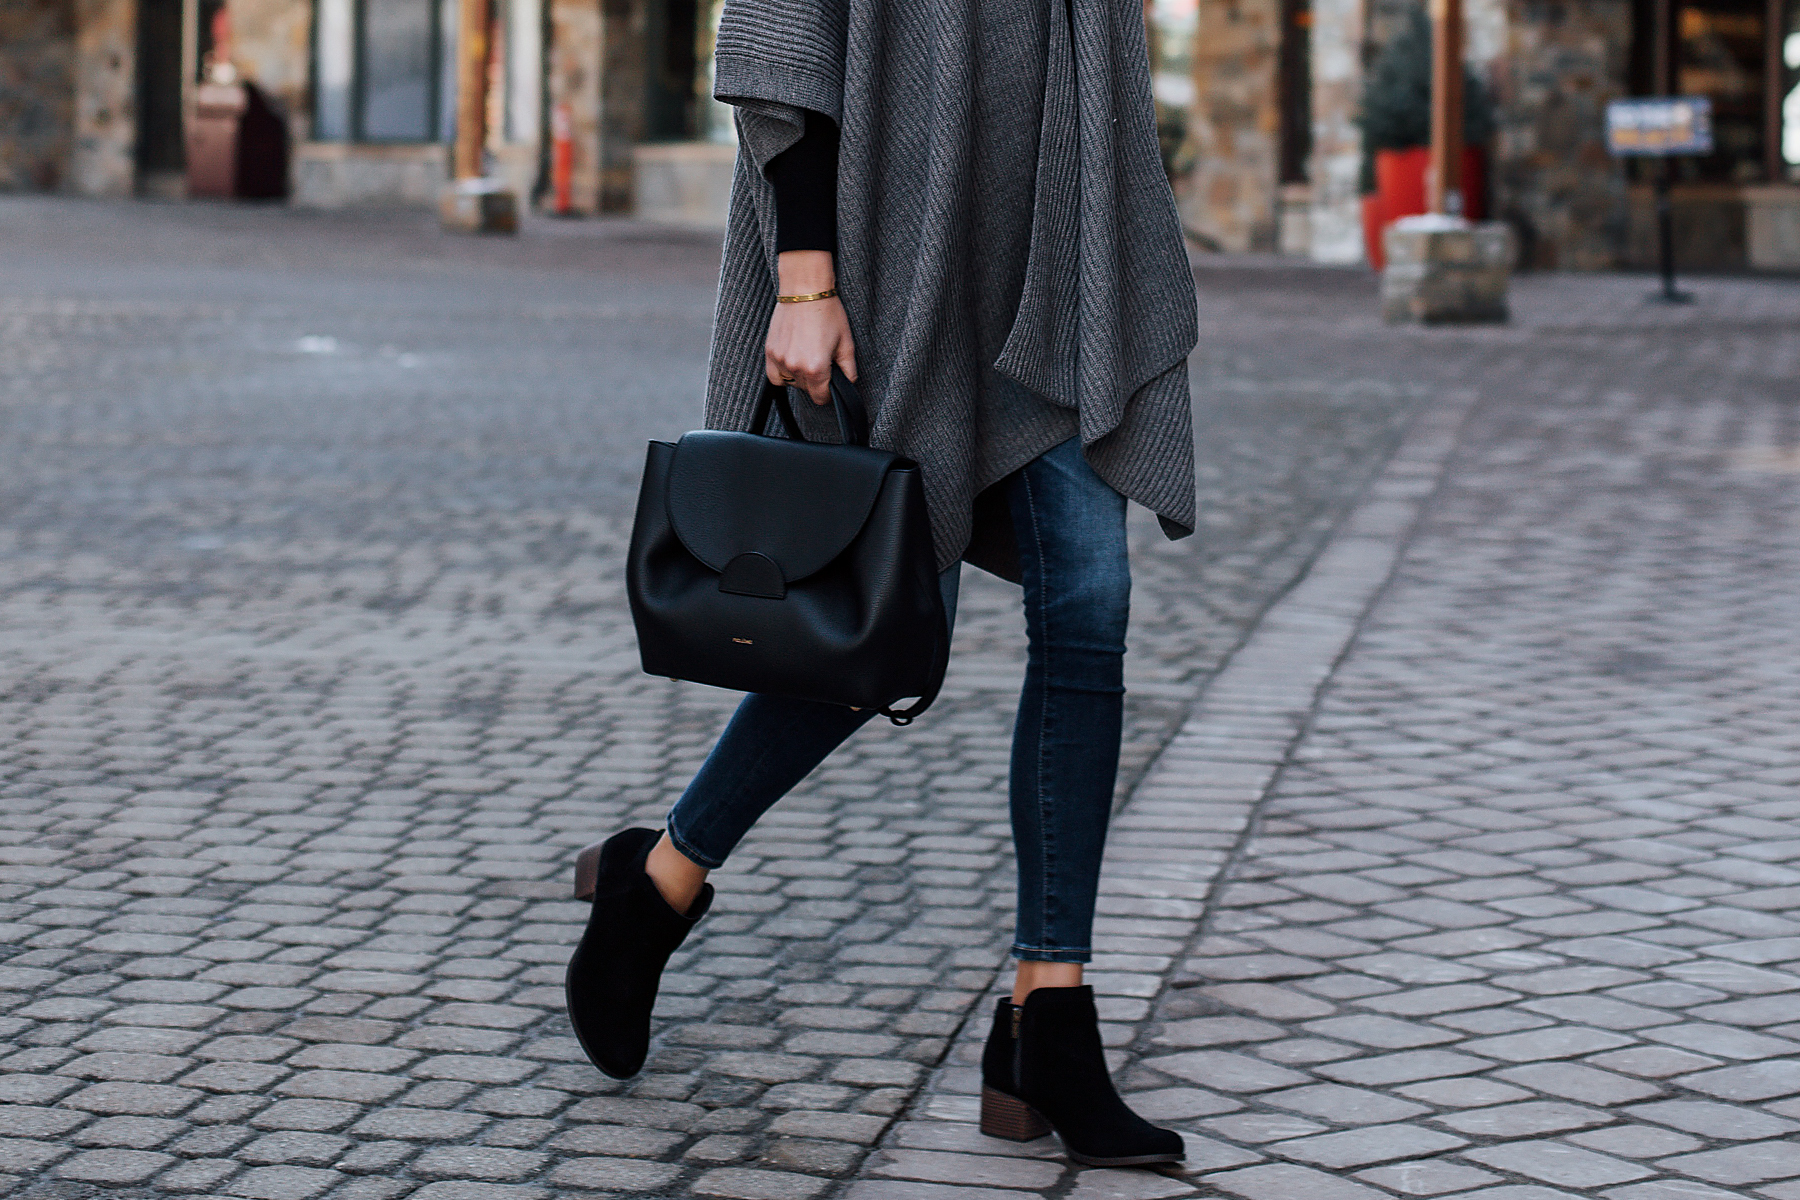 Fashion Jackson Wearing Koolaburra Thia Black Booties Grey Poncho Sweater Denim Ripped Skinny Jeans Polene Handbag Fashion Jackson San Diego Fashion Blogger Street Style